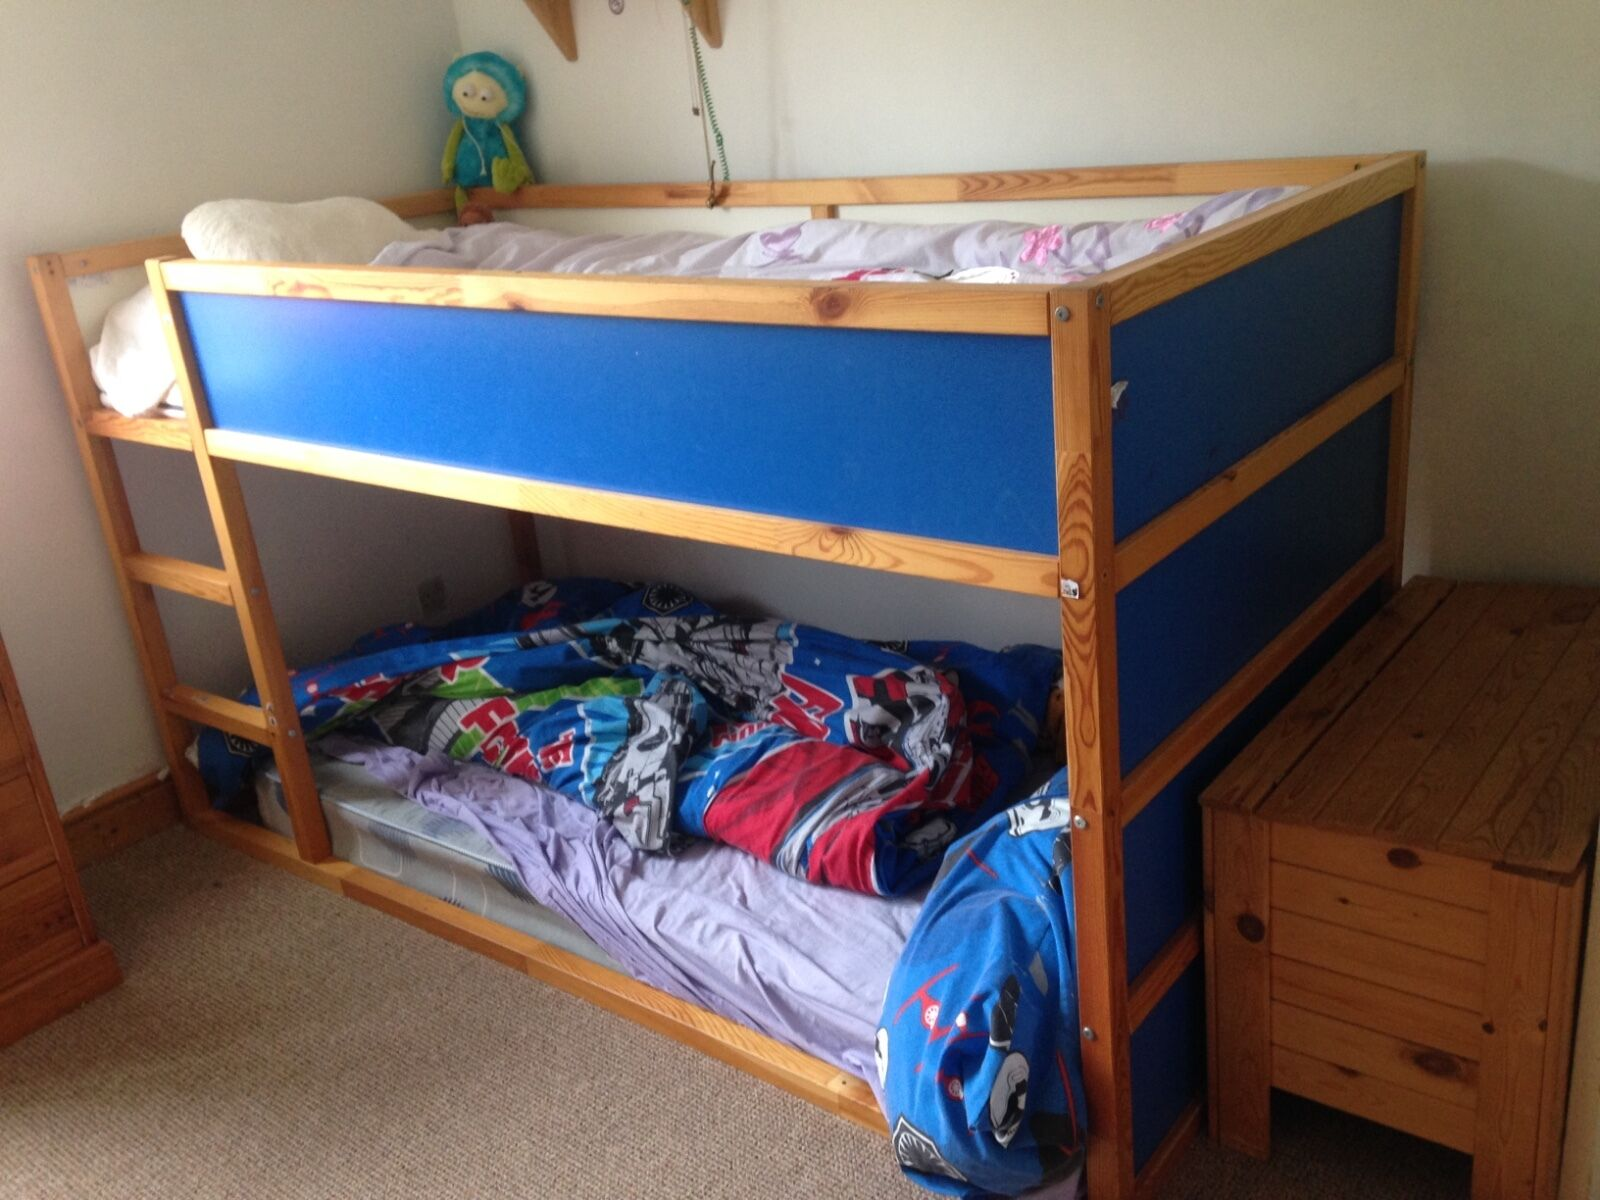 Used ikea reversible childrens kids mid sleeper bed frame mattress with canopy - Ikea kids bed frames ...